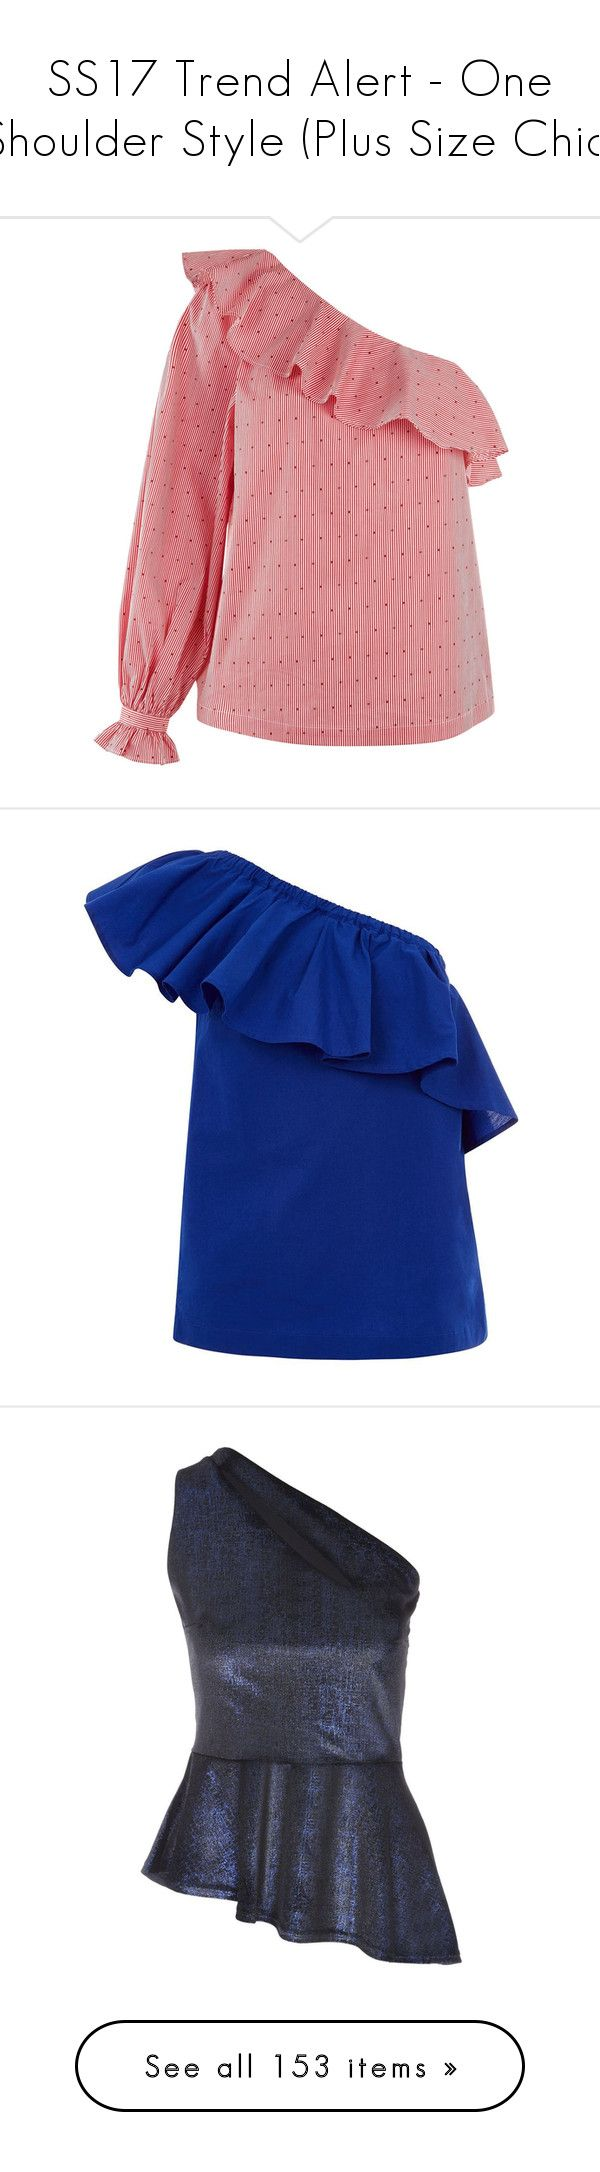 """""""SS17 Trend Alert - One Shoulder Style (Plus Size Chic)"""" by foolsuk ❤ liked on Polyvore featuring tops, sweaters, frill top, ruffle trim sweater, ruffled sweaters, house of fraser, blue ruffle top, blue, women and jane norman"""